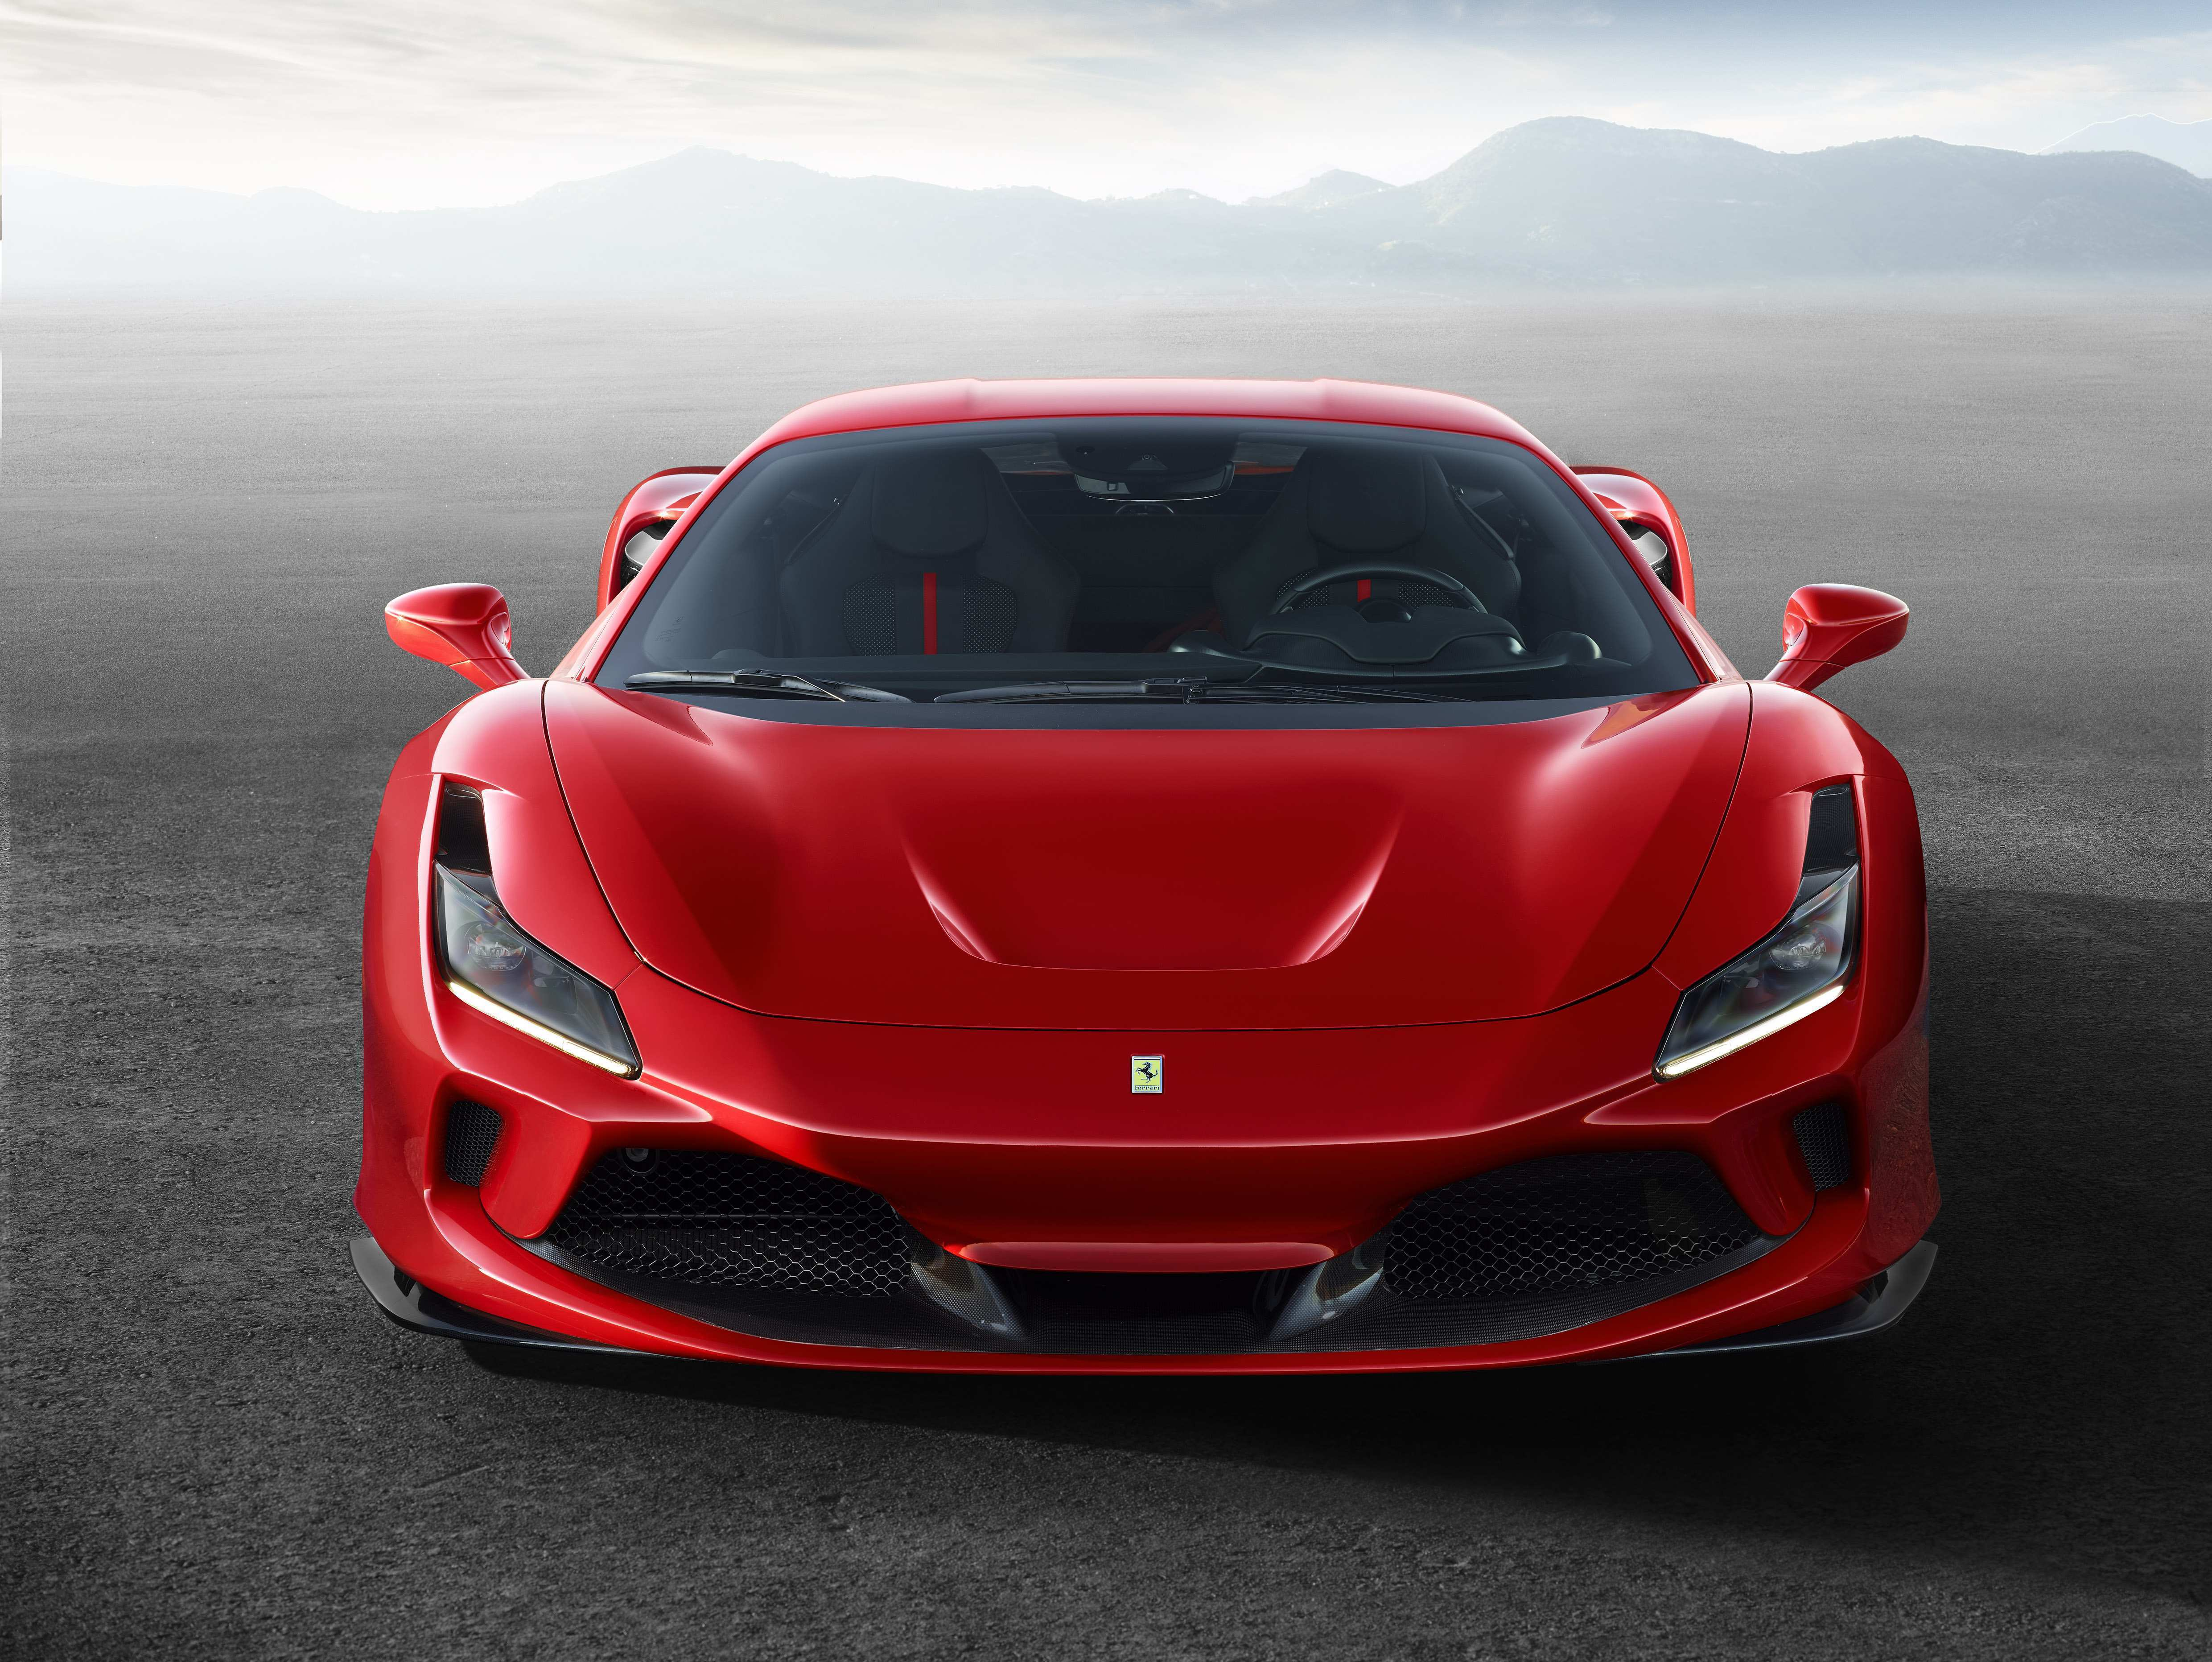 75 The 2020 Ferrari 458 Spider Price And Release Date